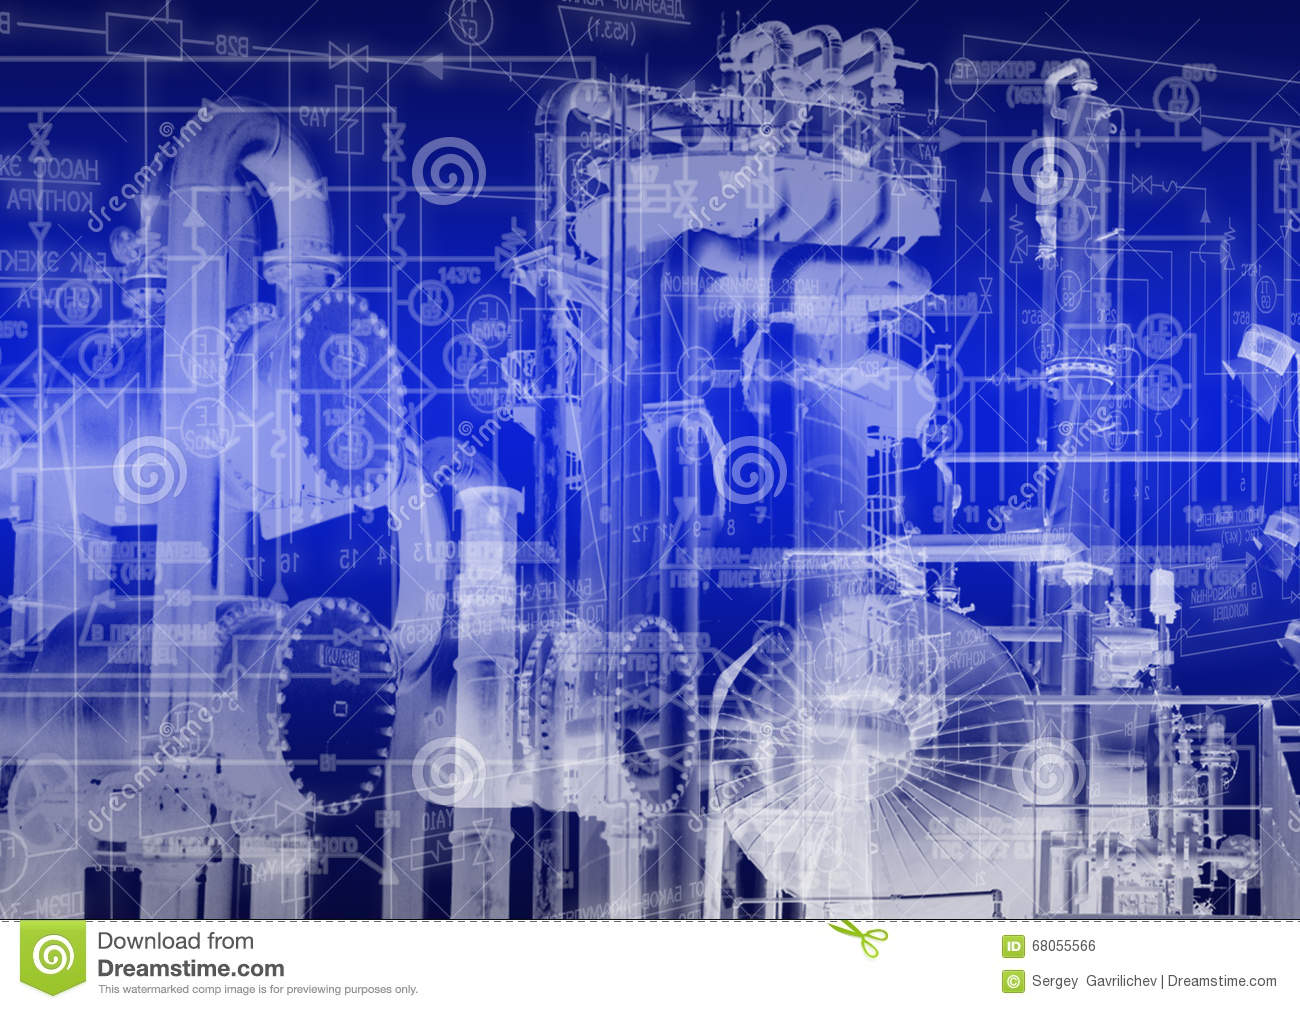 Industrial Engineering Technology Stock Photo - Image: 68055566